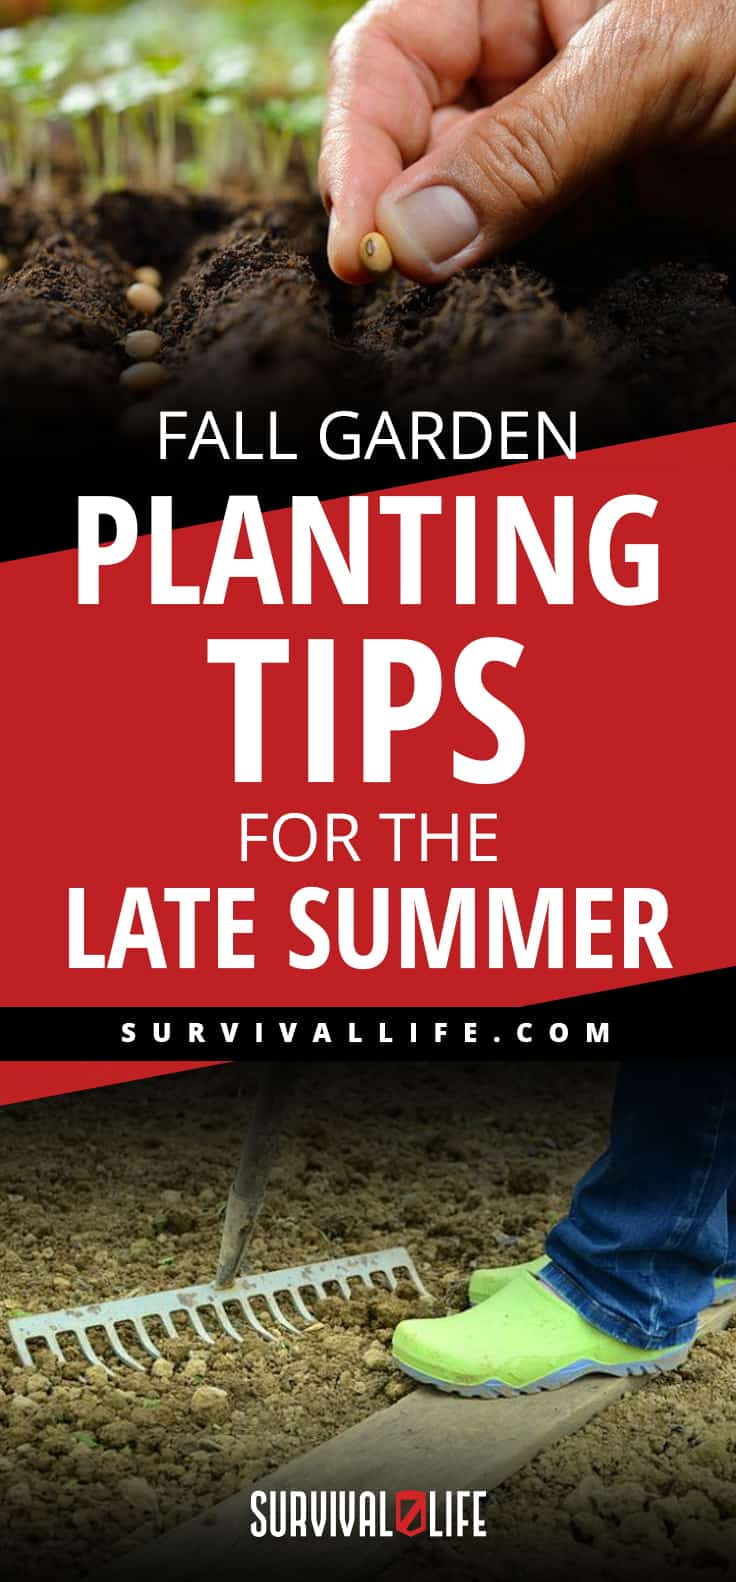 Fall Garden Planting Tips For The Late Summer